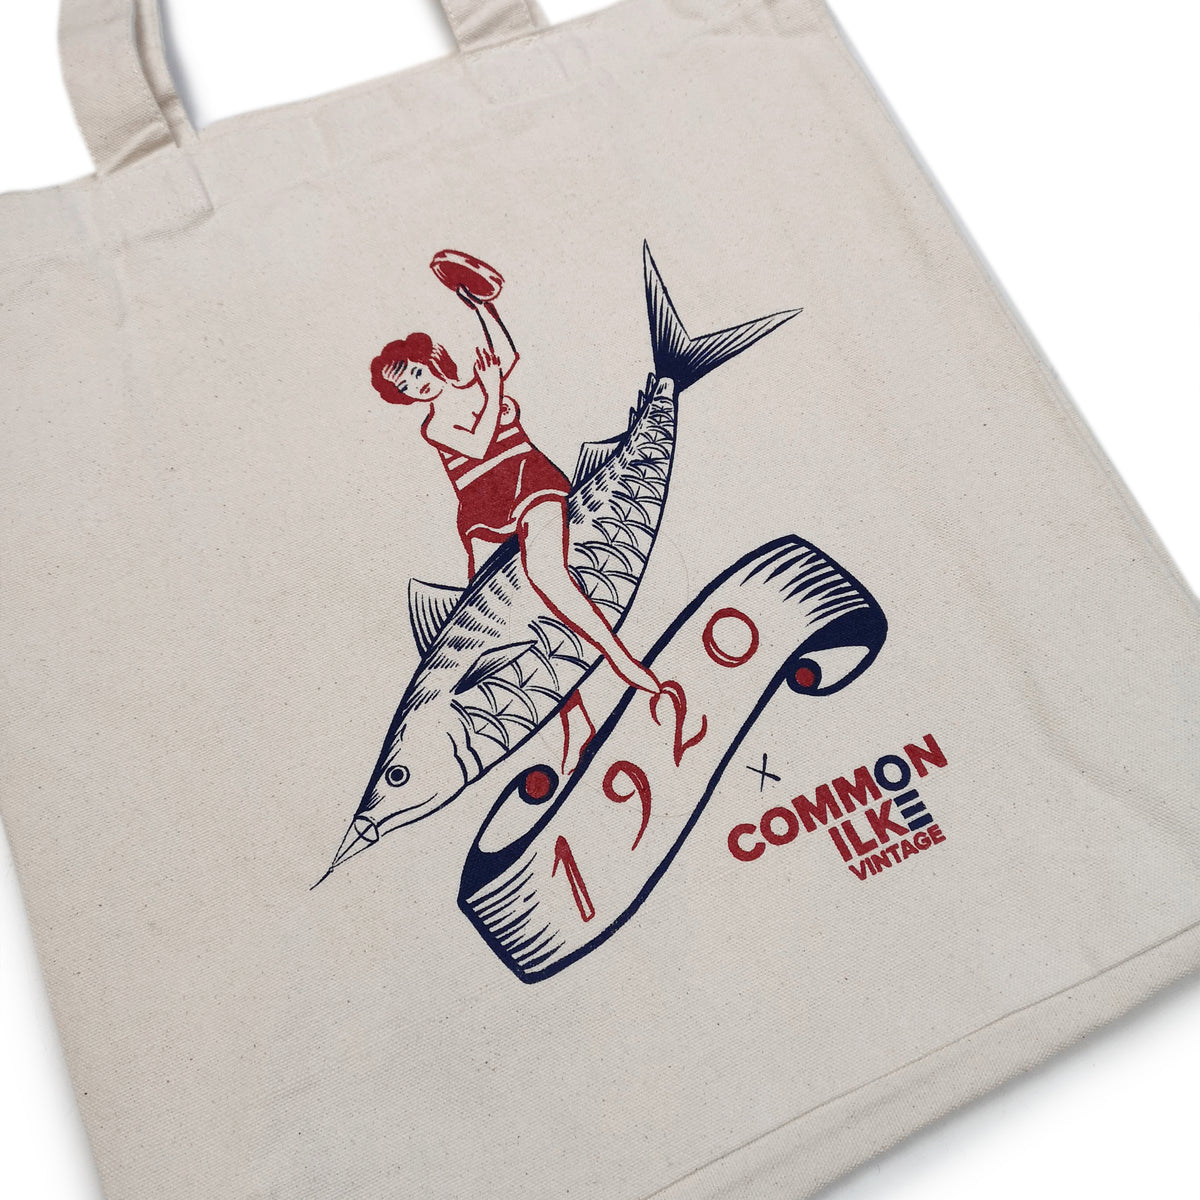 1920 Tattoo X COMMON ILKE VINTAGE Fish Lady Print Cotton Canvas Tote Bag graphic